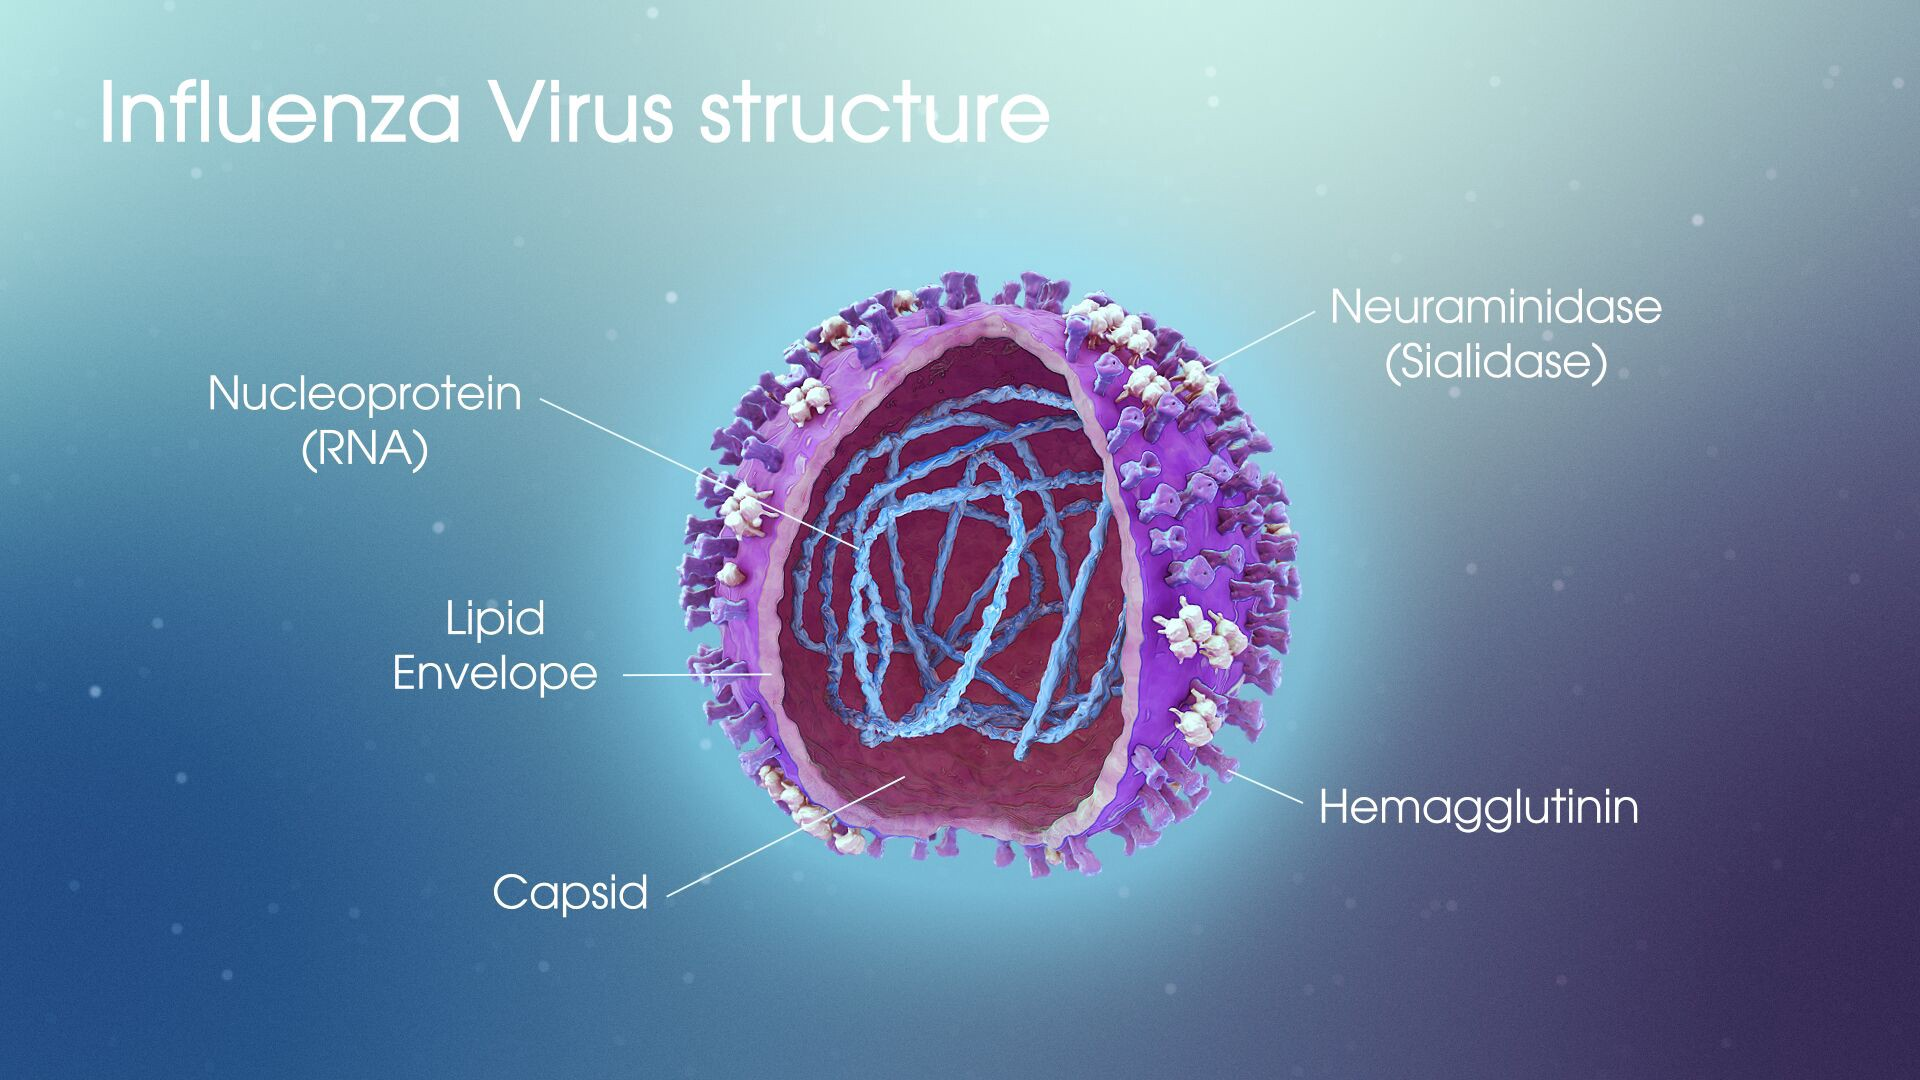 A diagram of the Influenza Virus structure